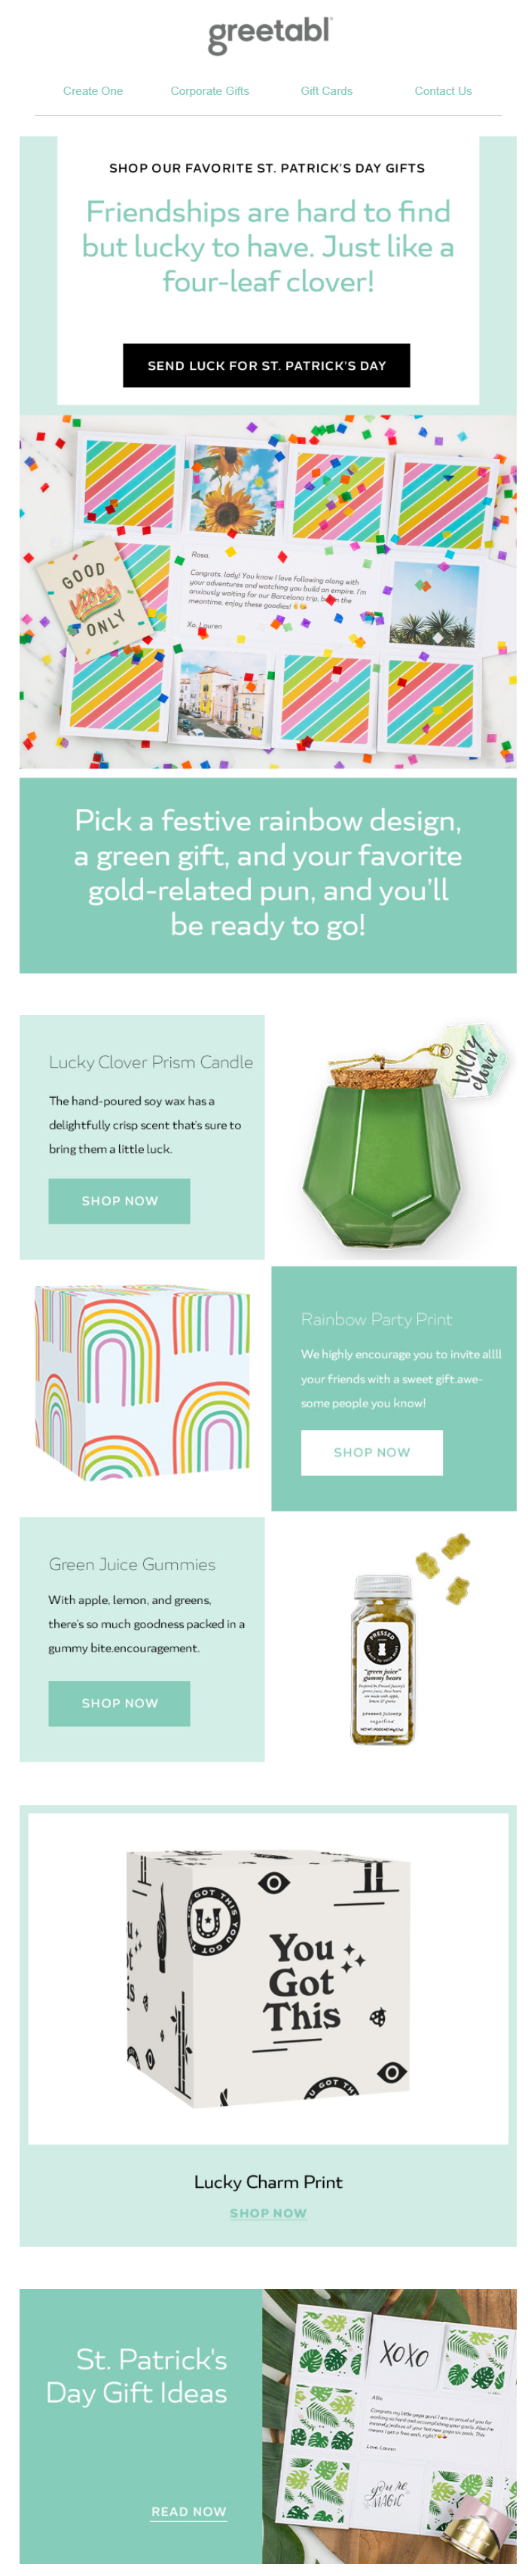 St. Patrick's Day email example by Greetabl